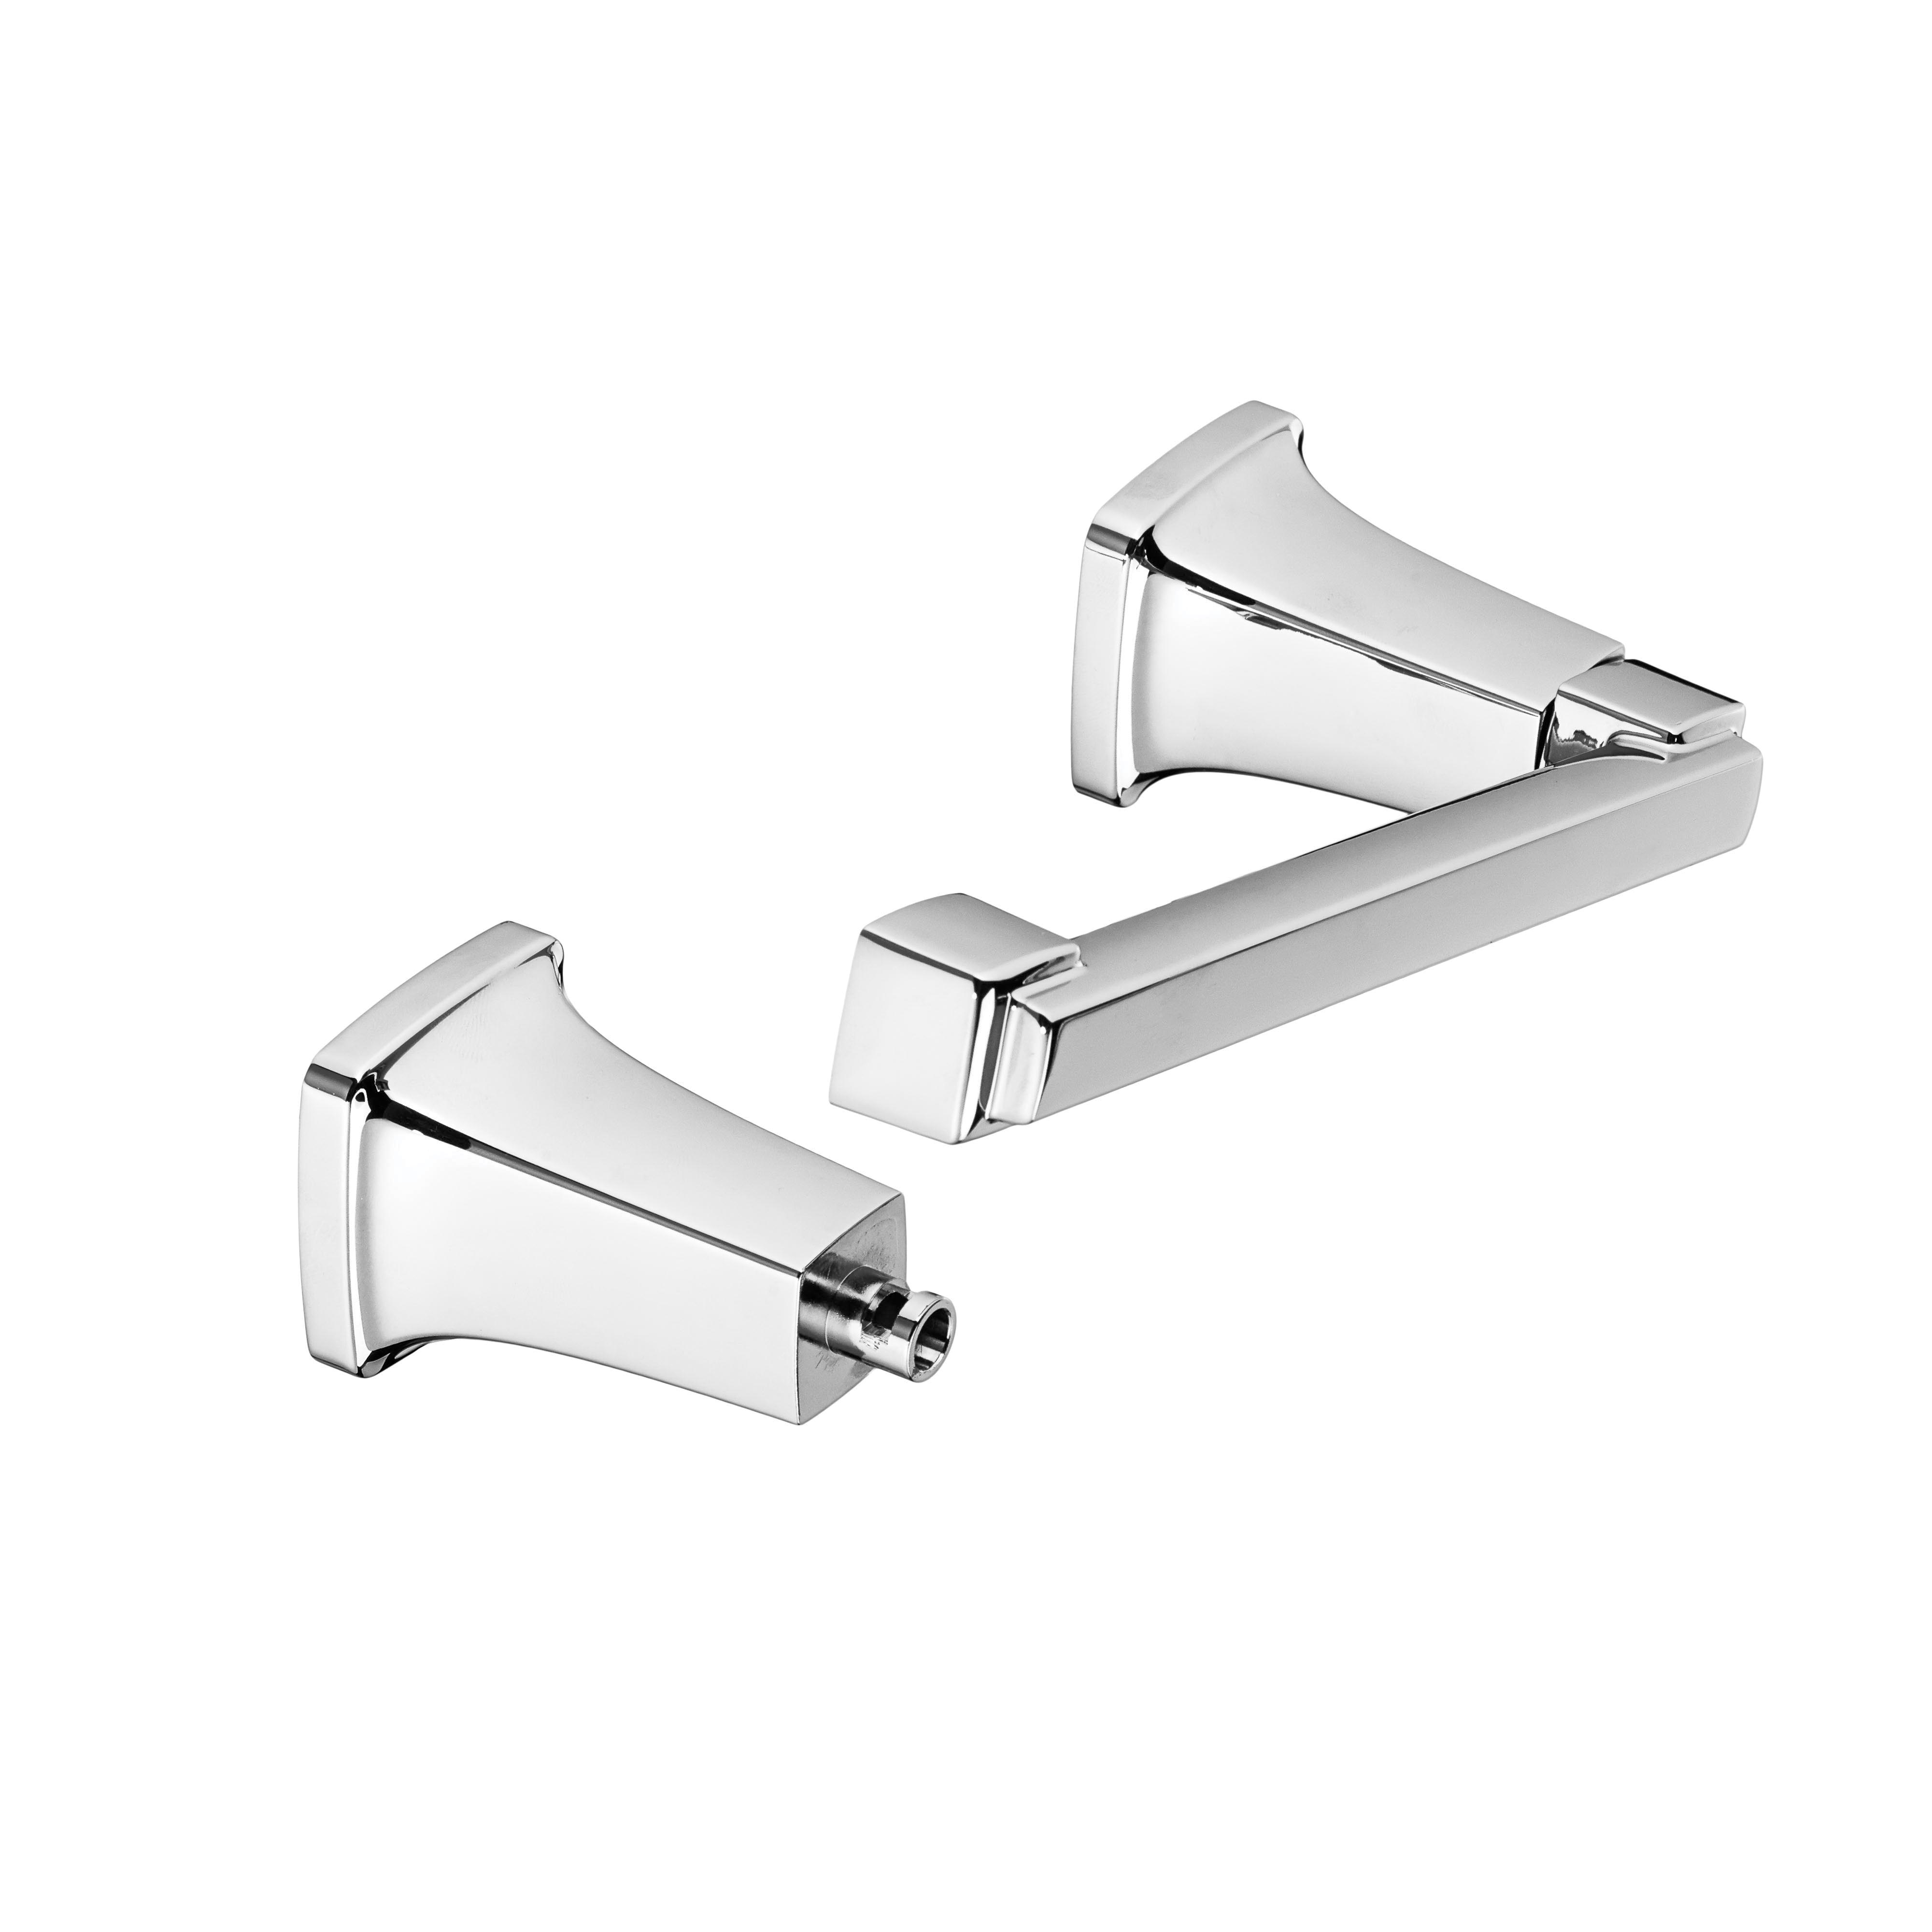 American Standard 7353230.002 Townsend® Pivoting Arm Toilet Paper Holder, 2 in H, Polished Chrome, Import